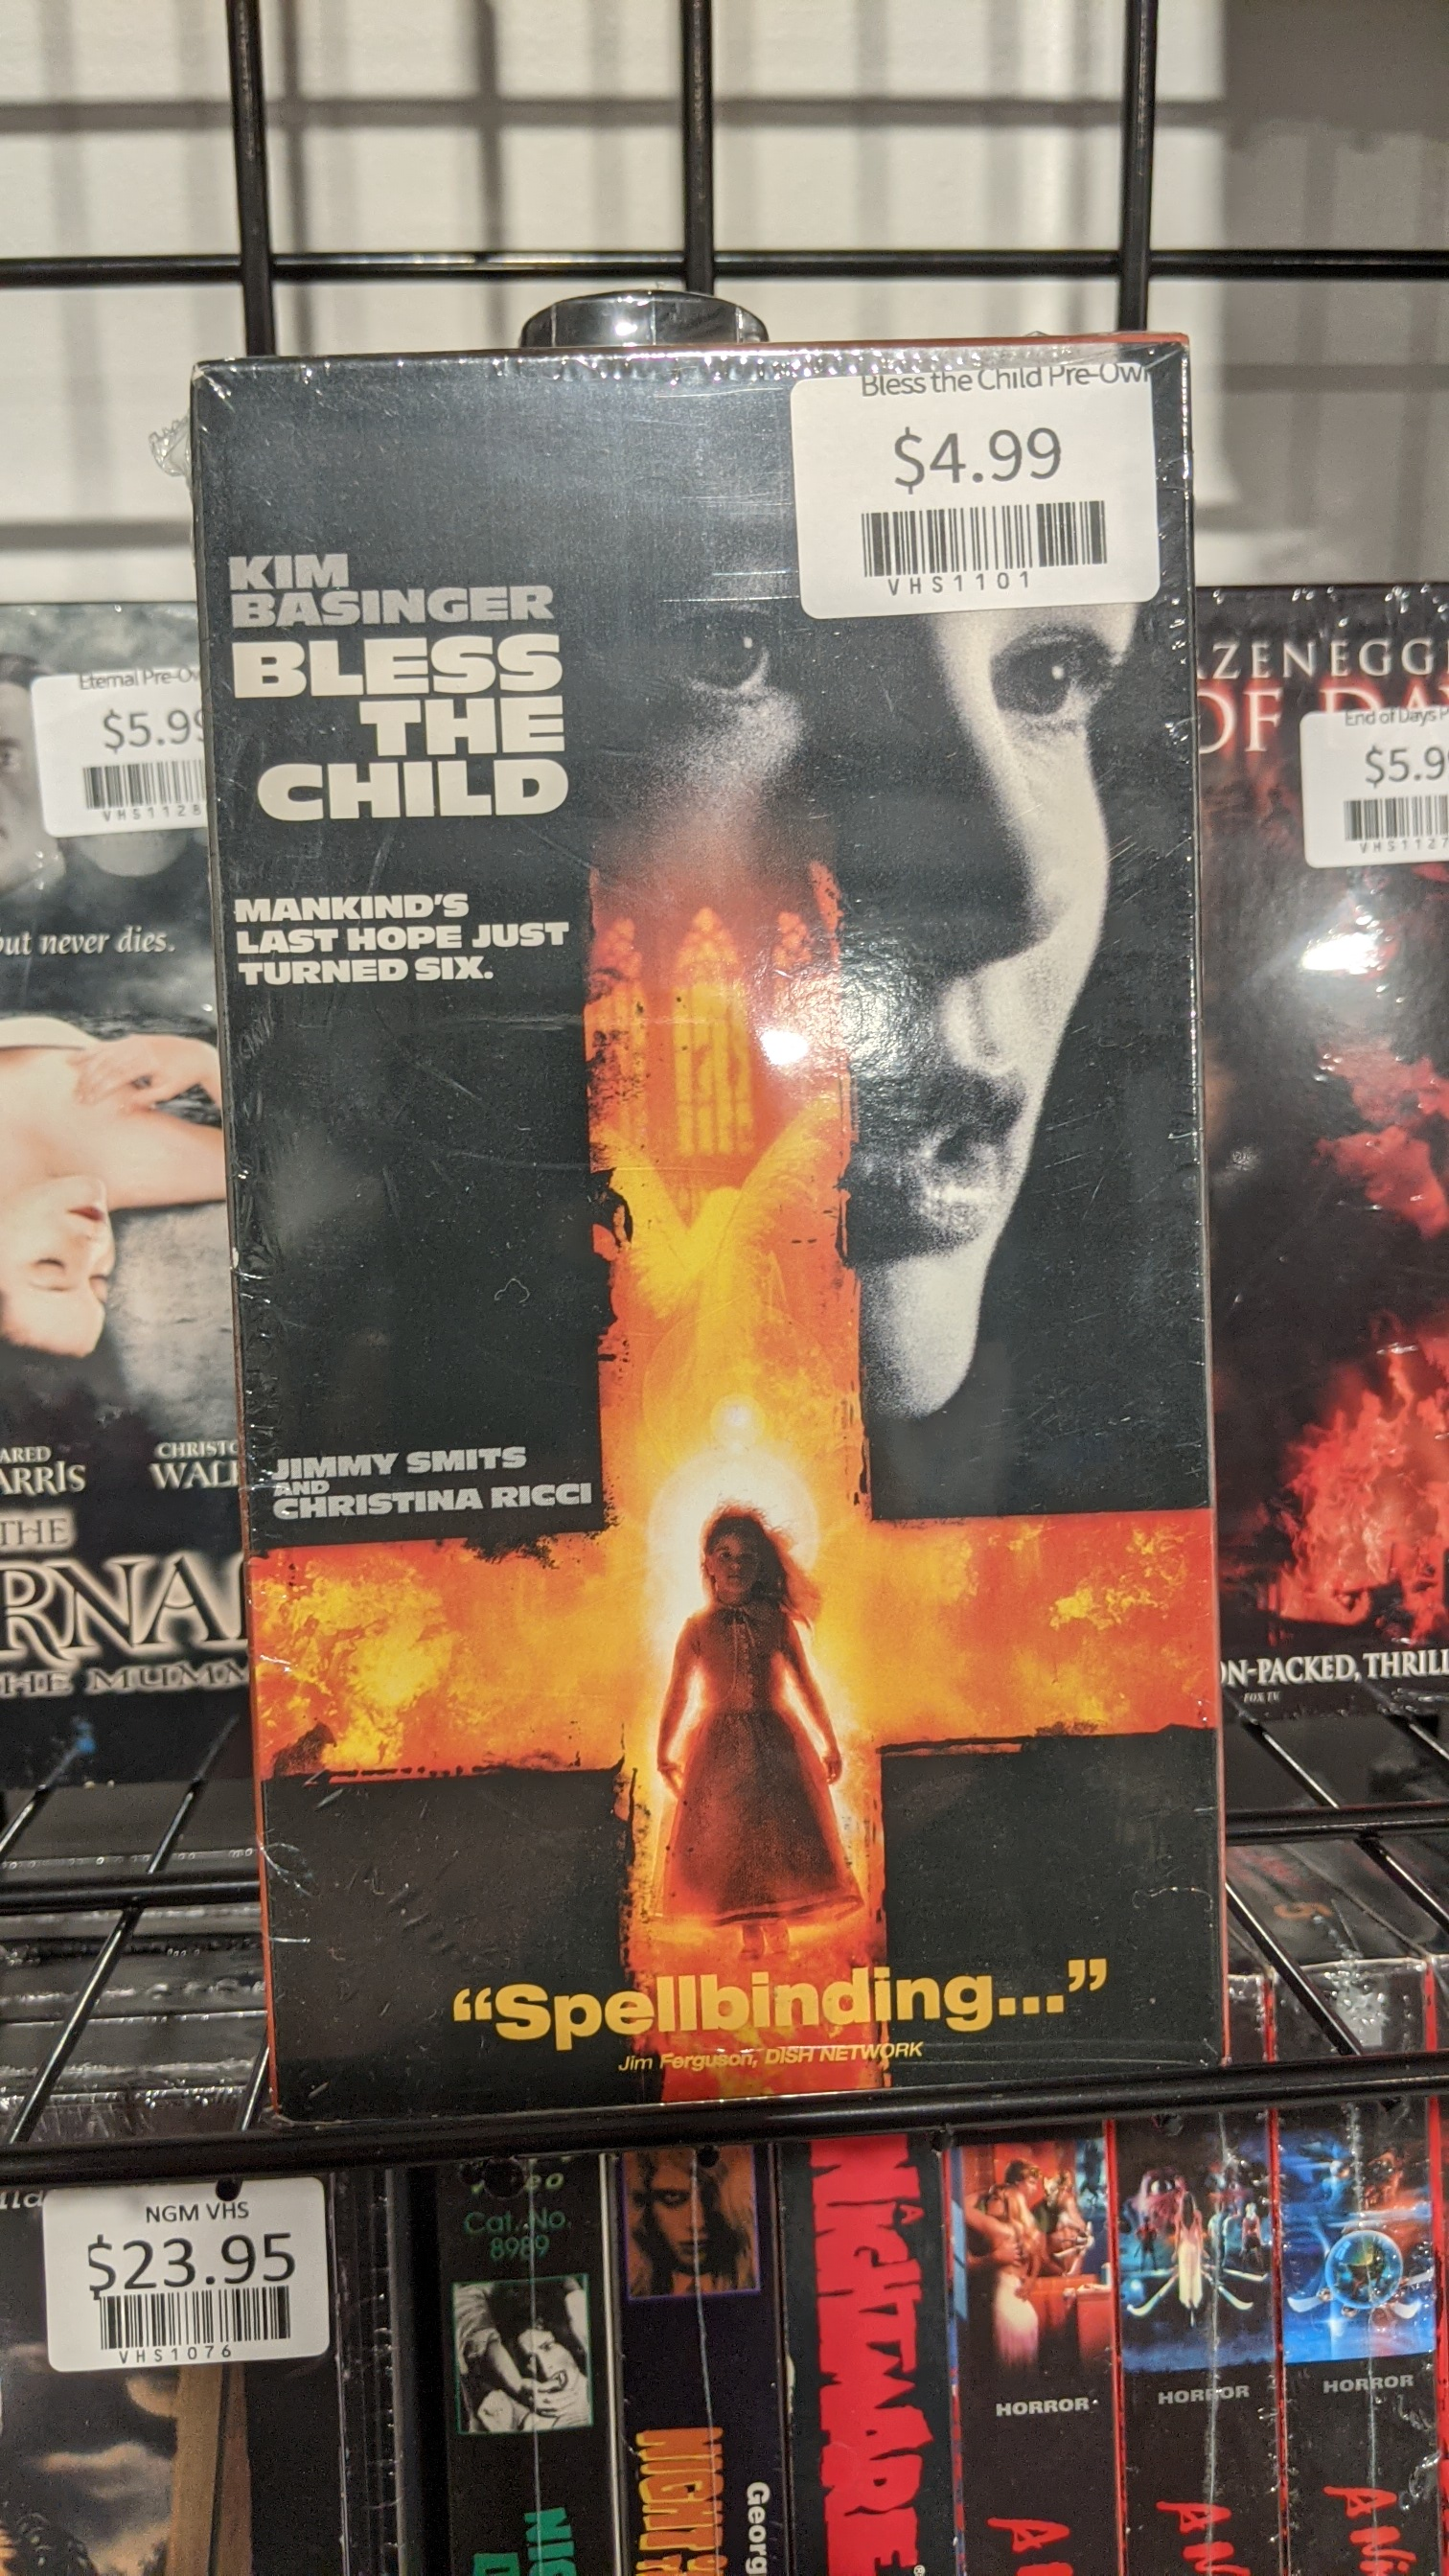 Bless the Child Pre-Owned